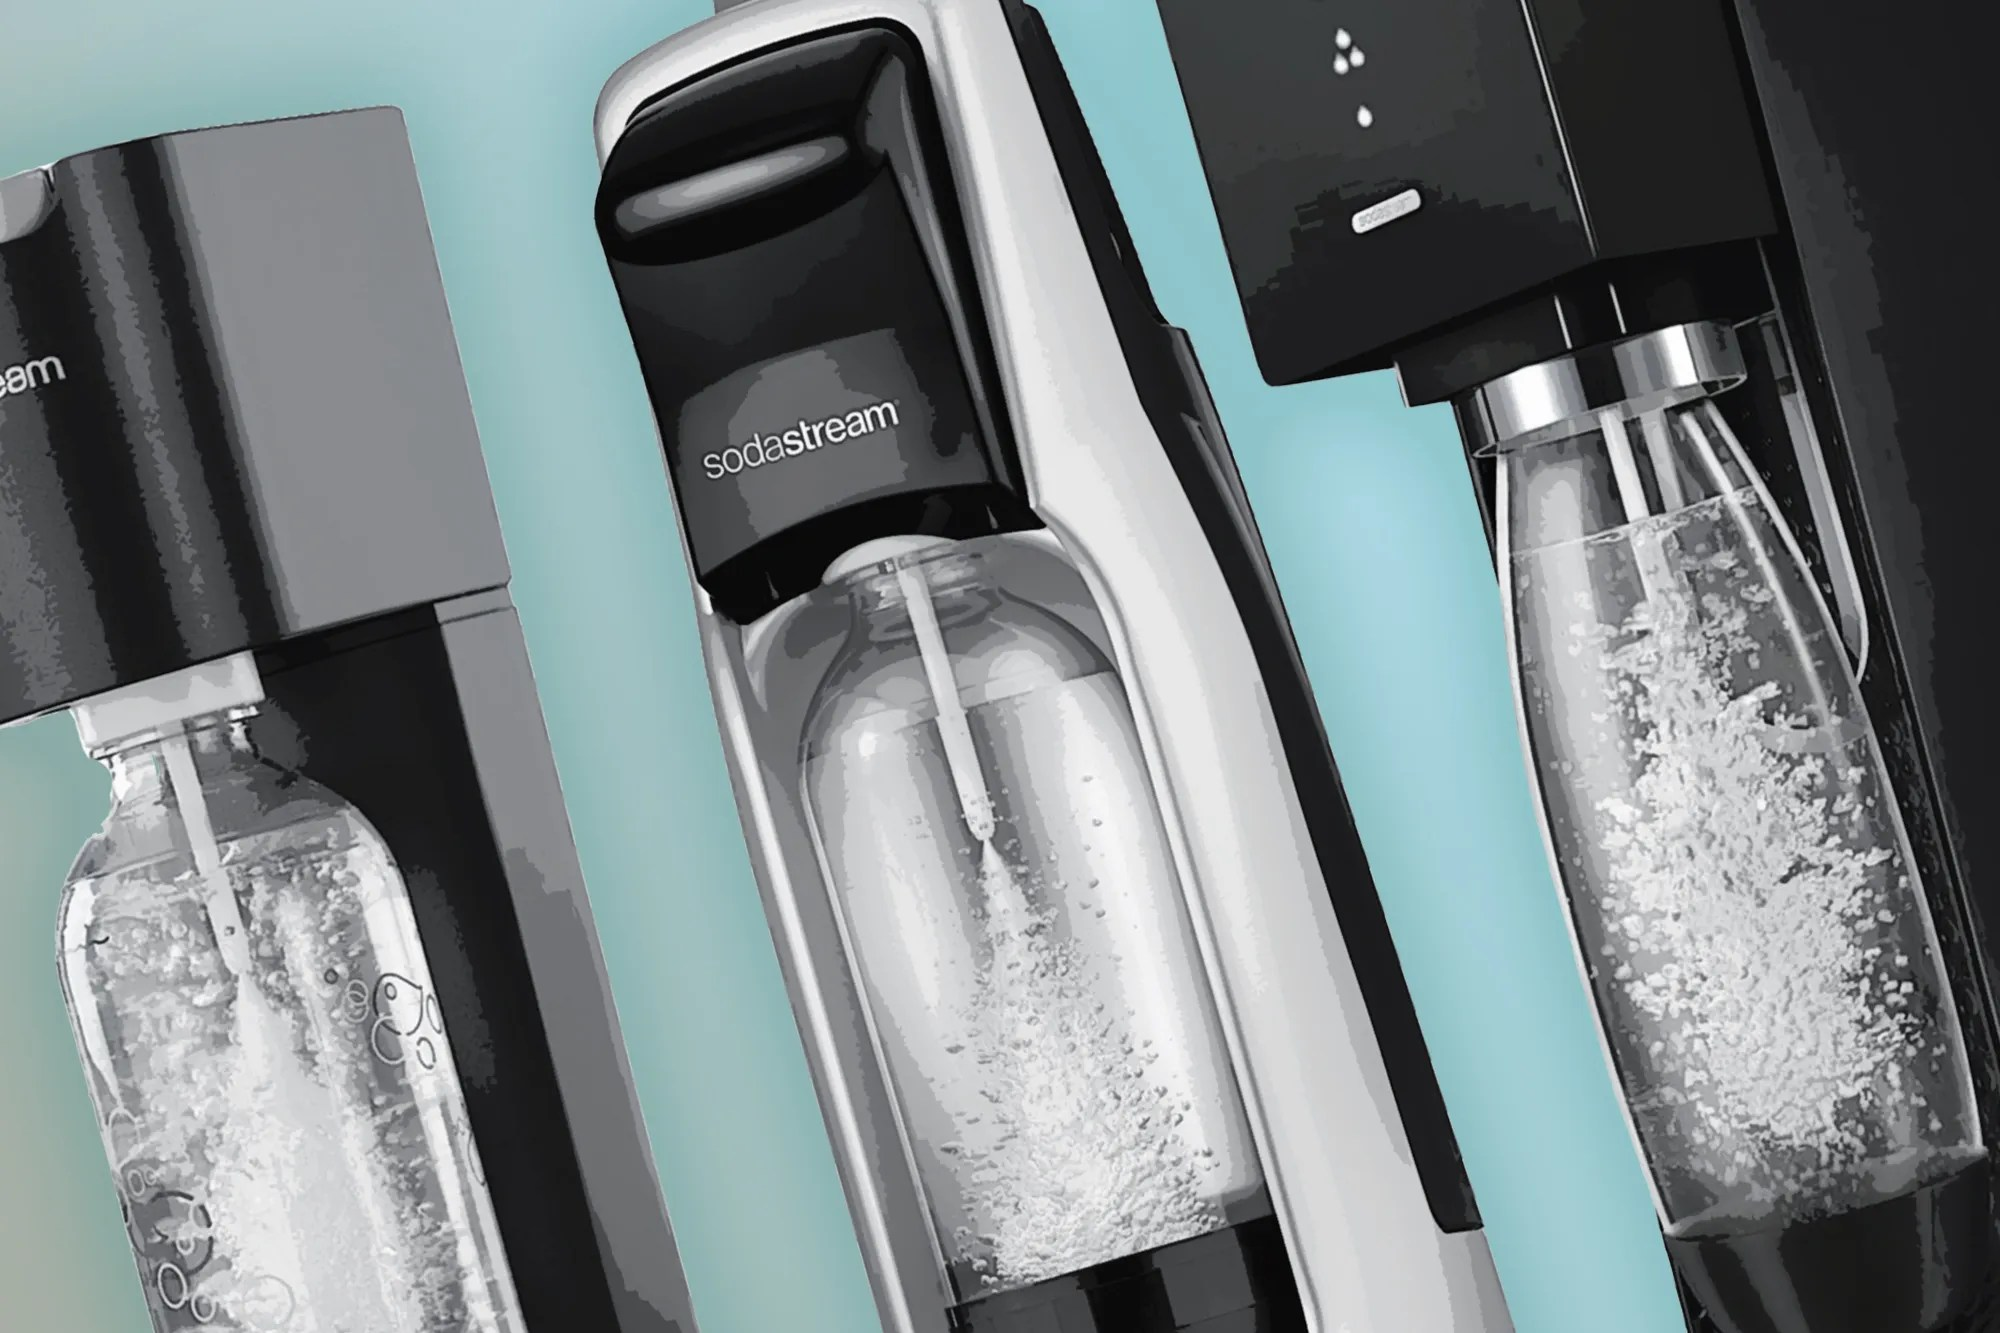 a sodastream buying guide